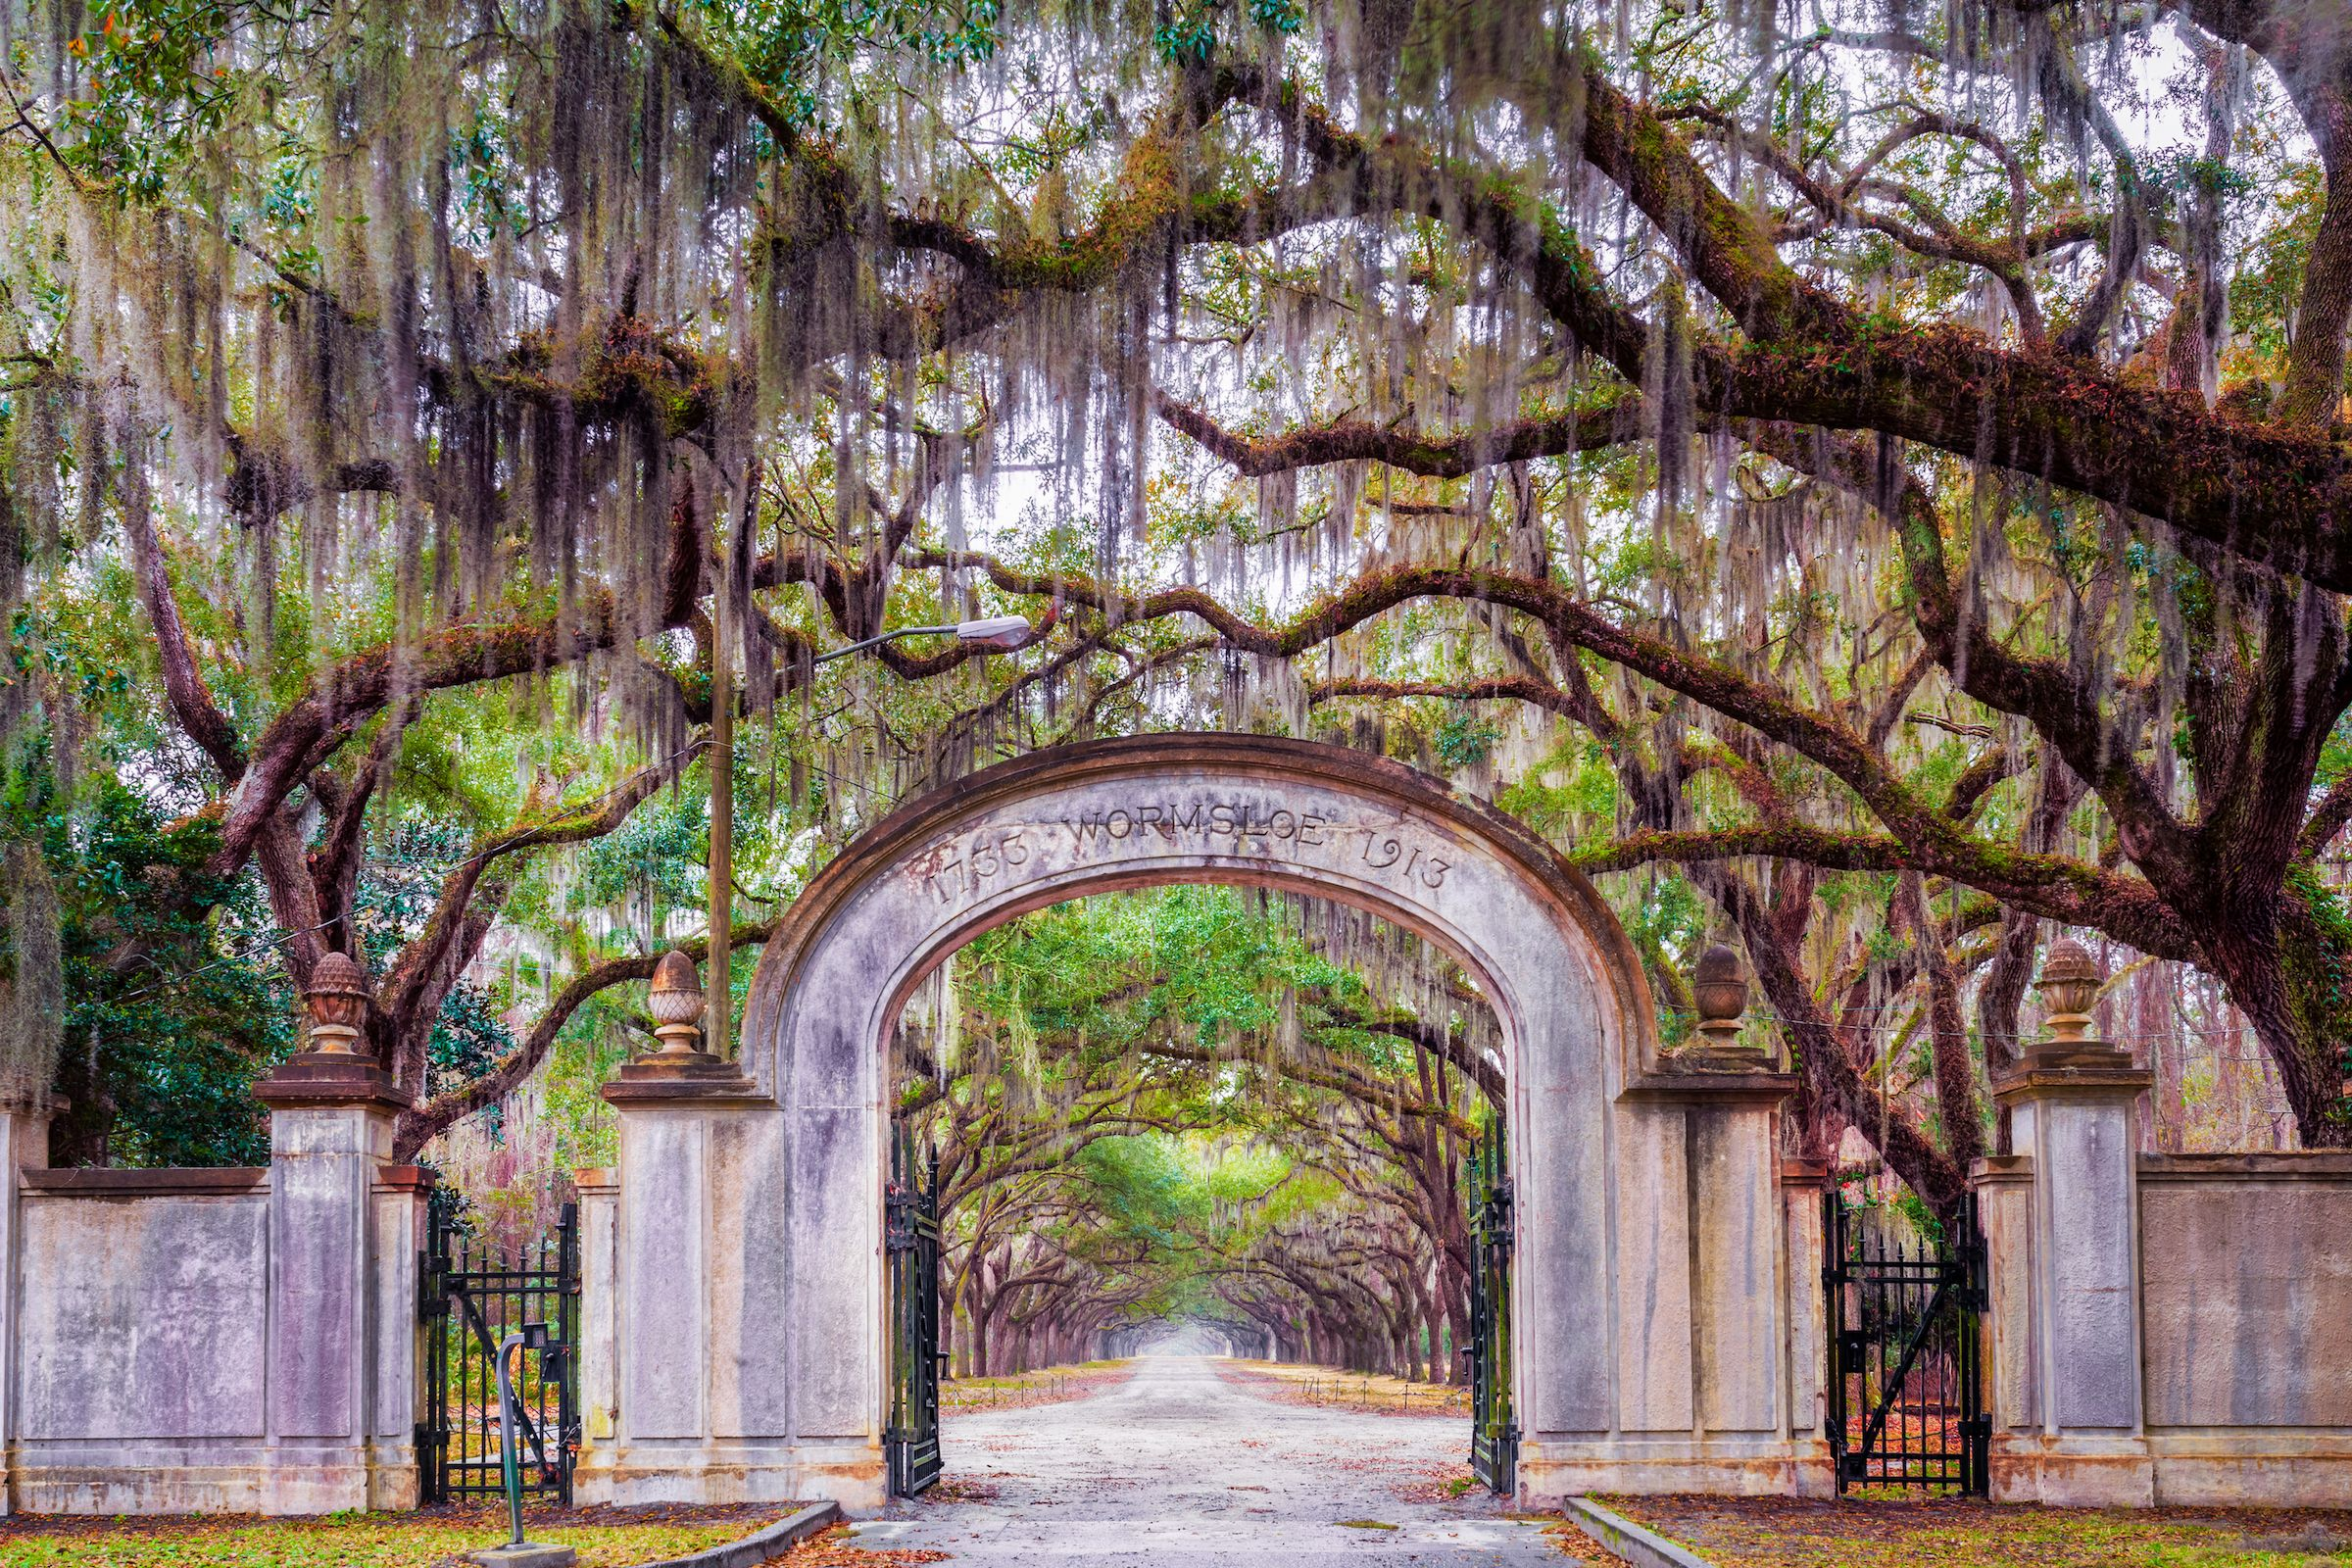 Georgia: Wormsloe Plantation | The most beautiful places in each state